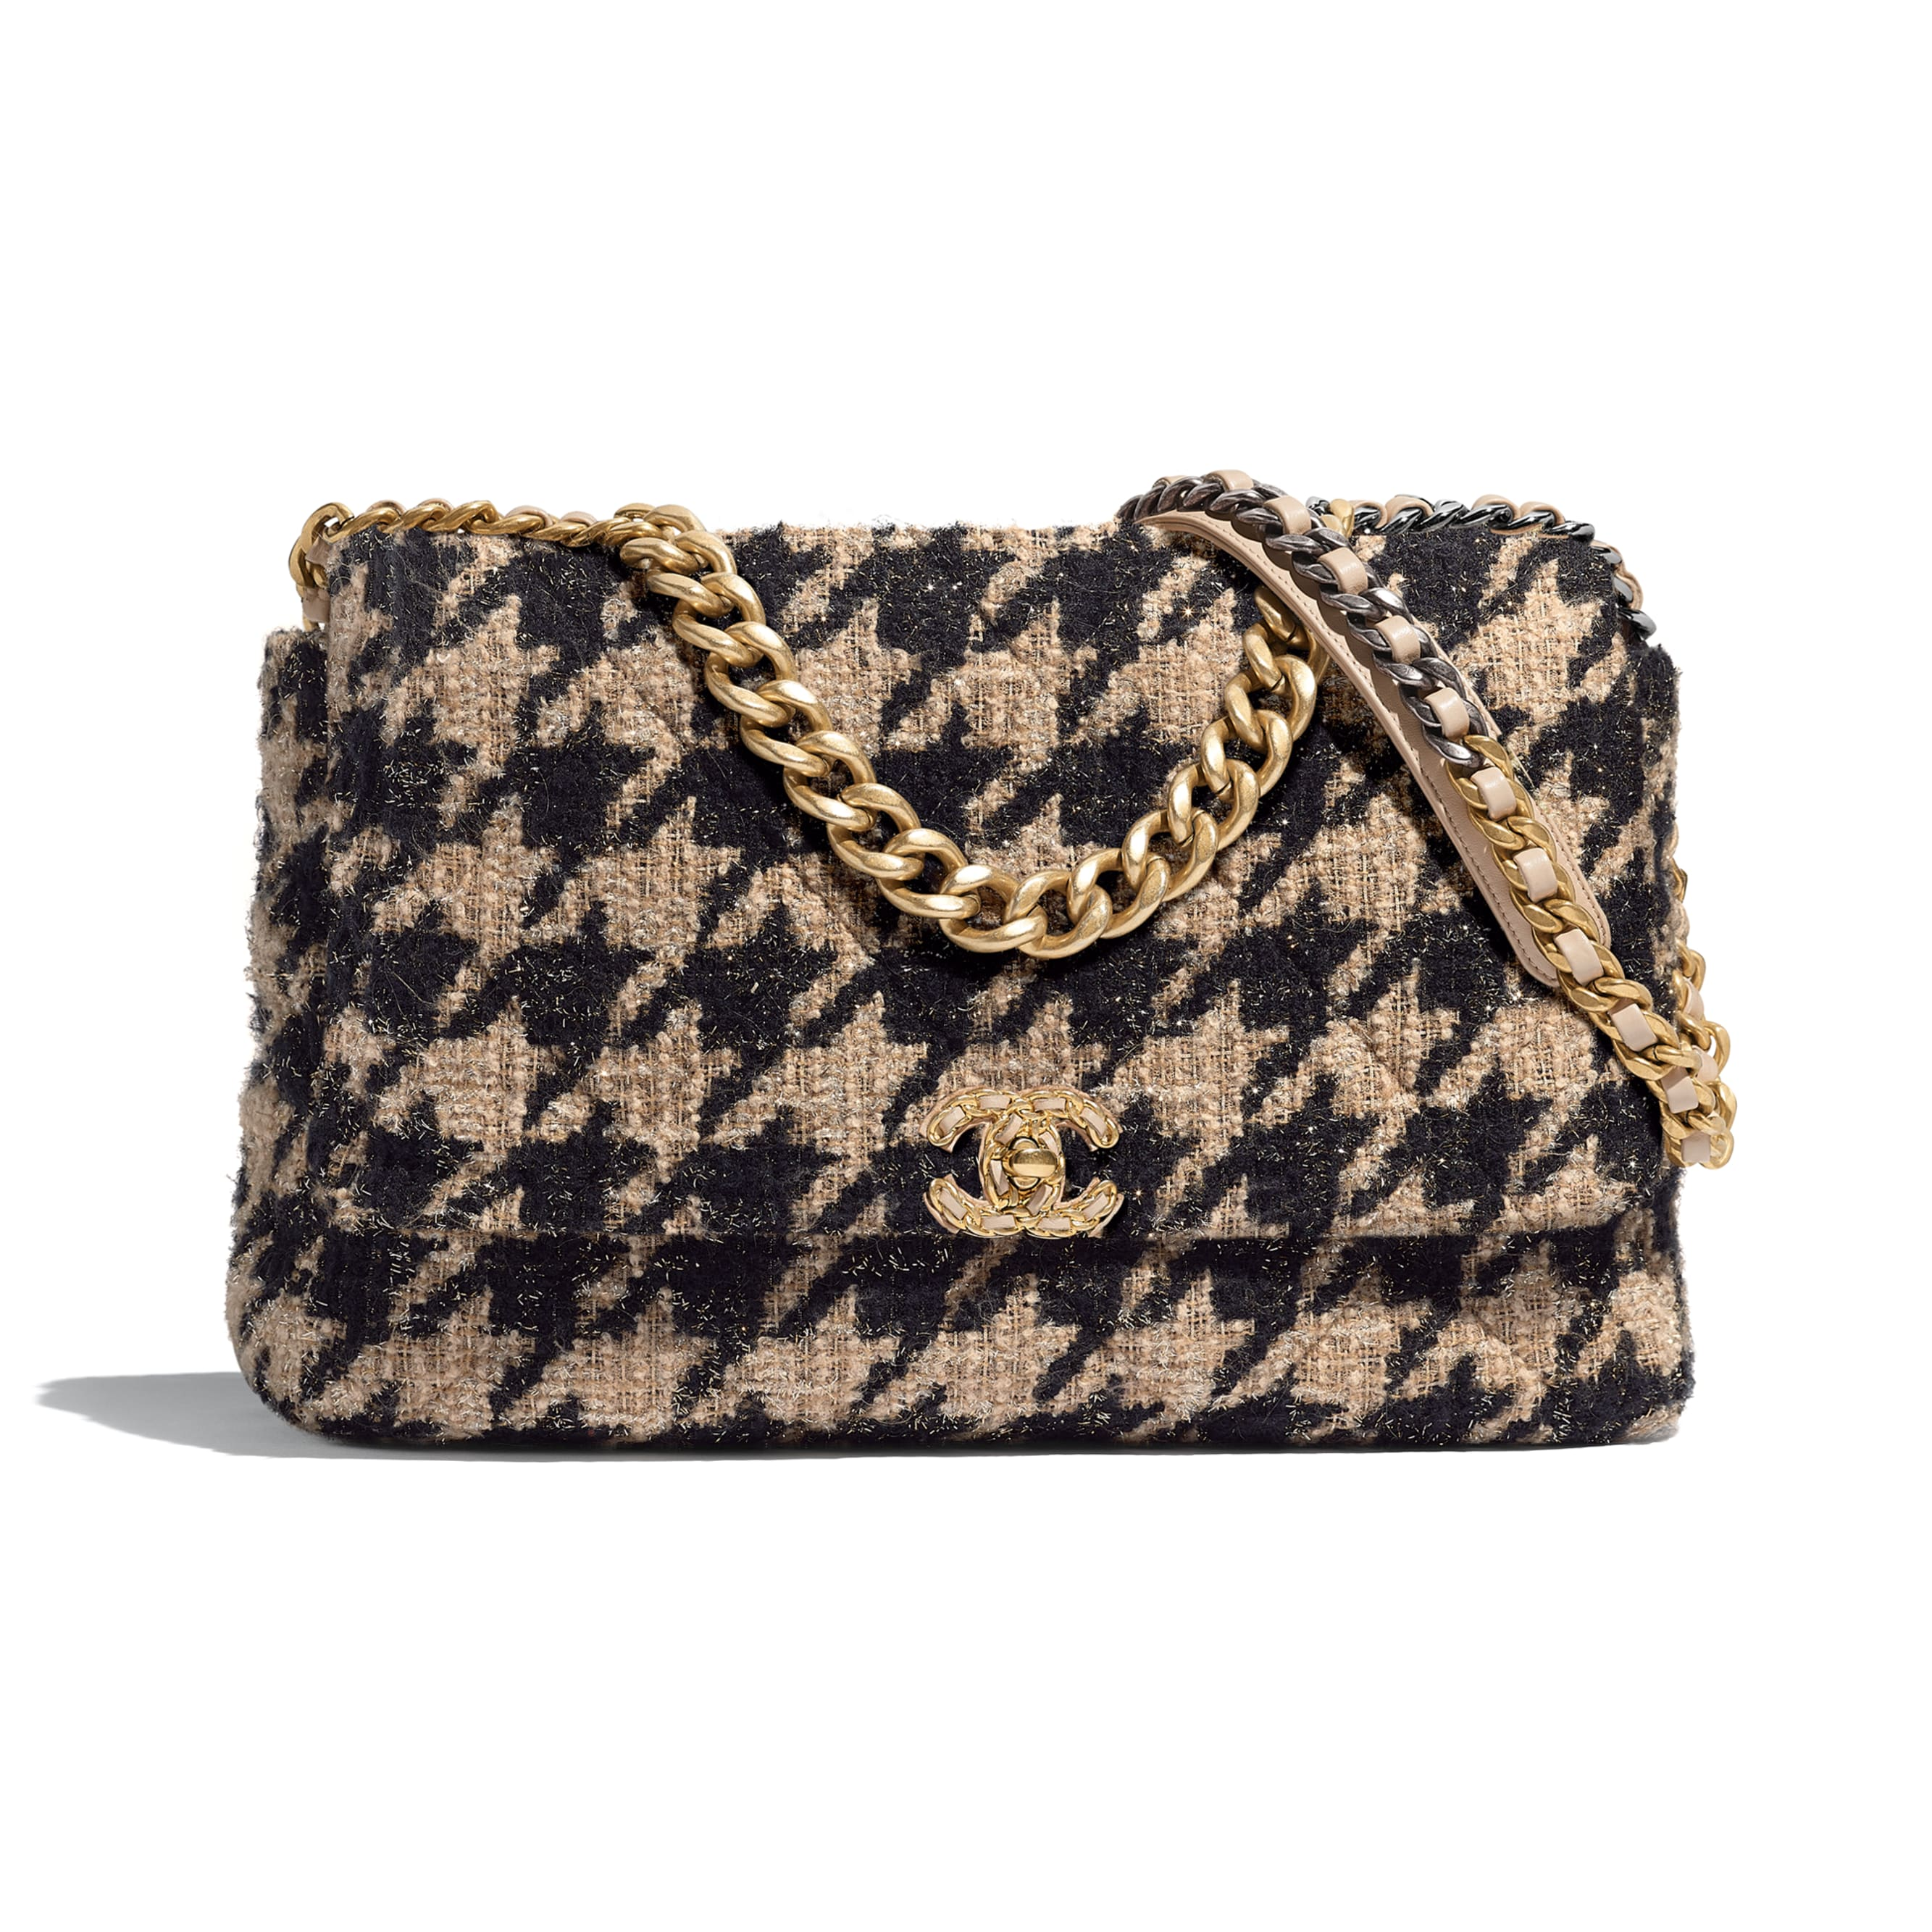 CHANEL 19 Maxi Flap Bag - Beige & Black - Tweed, Gold-Tone, Silver-Tone & Ruthenium-Finish Metal - Default view - see standard sized version